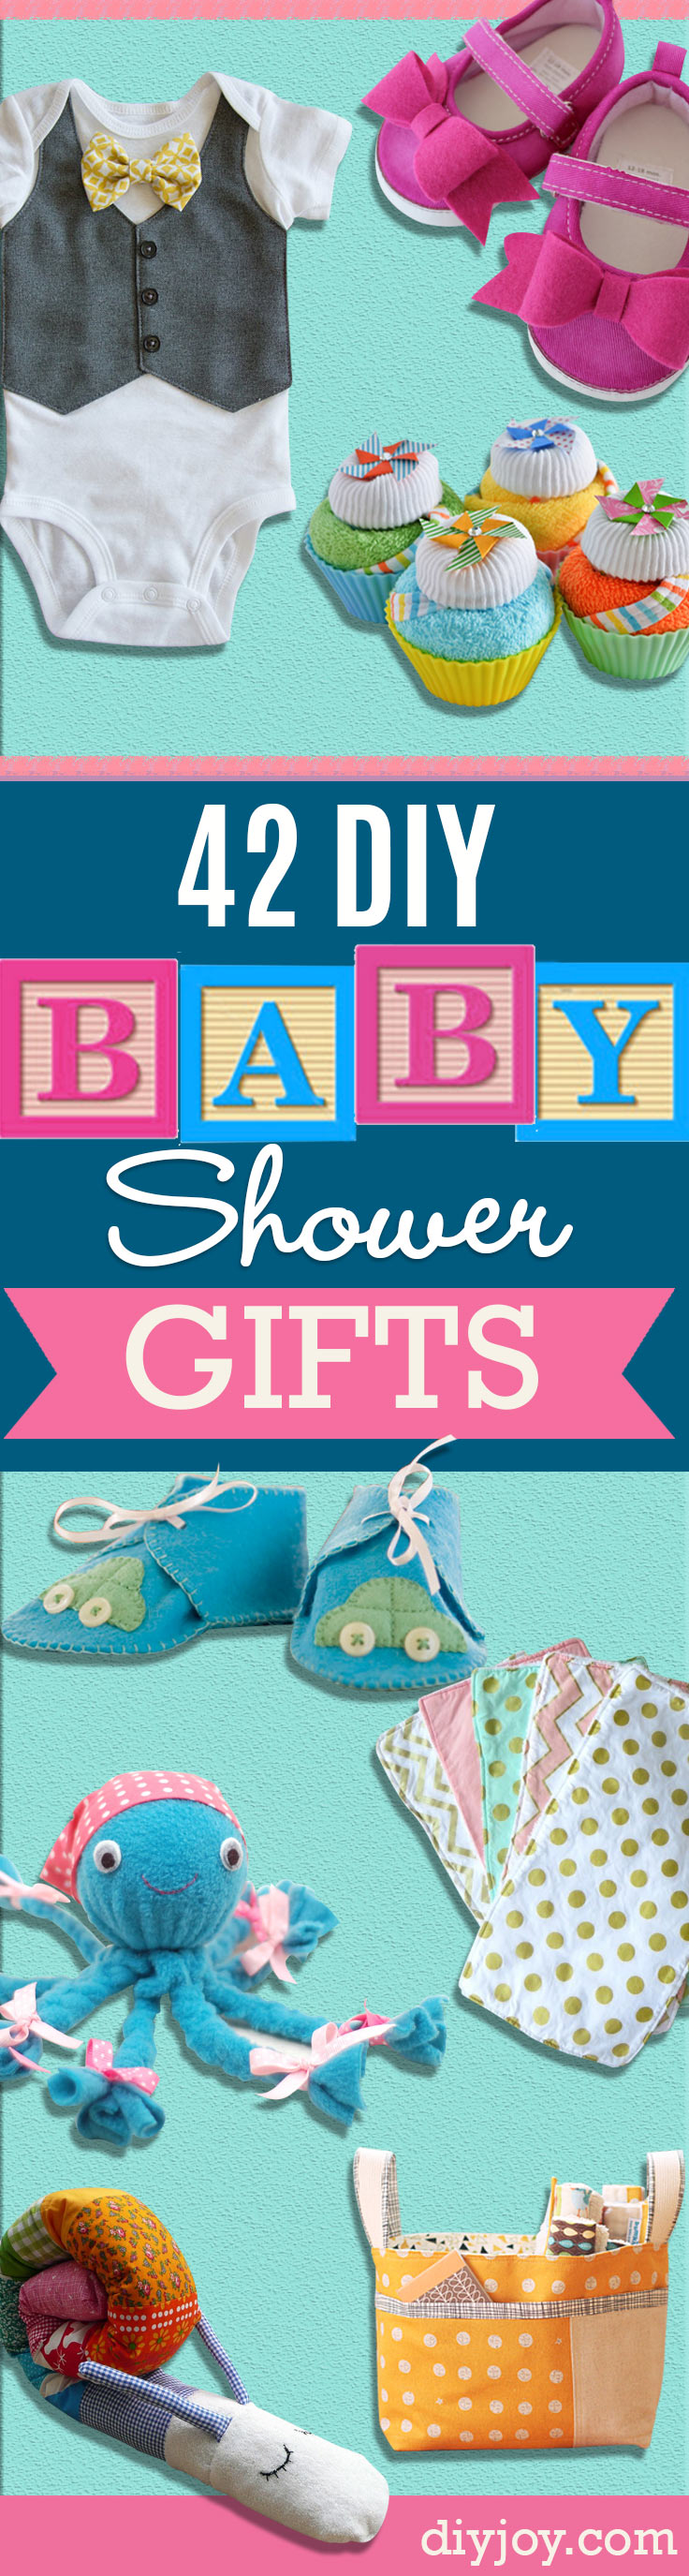 best good ideas on boys gifts baby gift pinterest shower ba for pinbrowser